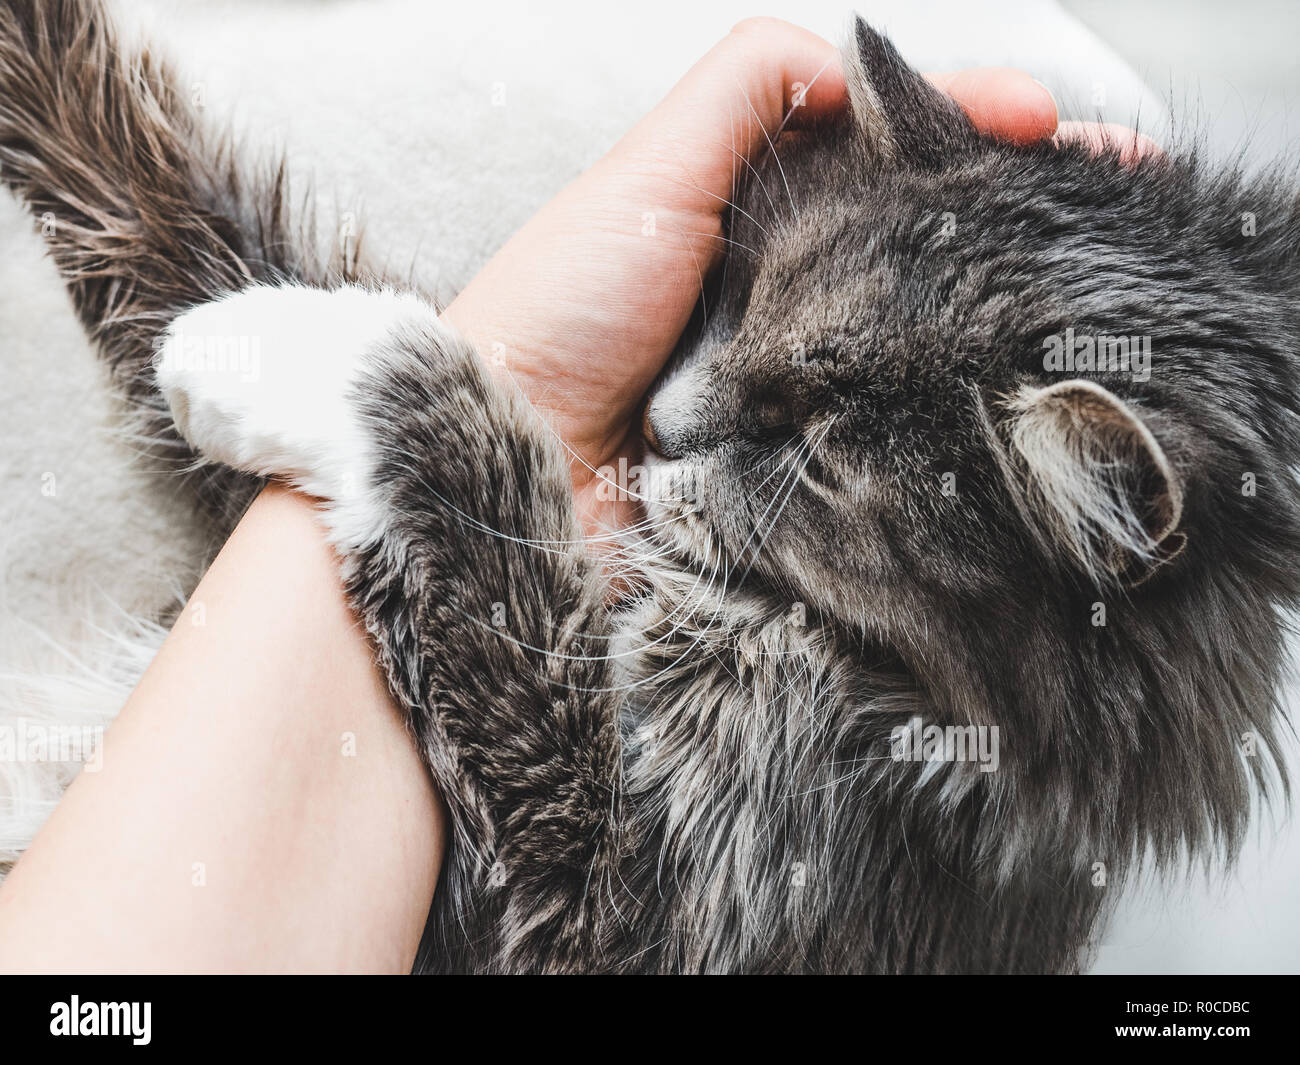 Charming fluffy kitten hugging a woman's hand on a white background. Top view, close-up. Pet care concept - Stock Image